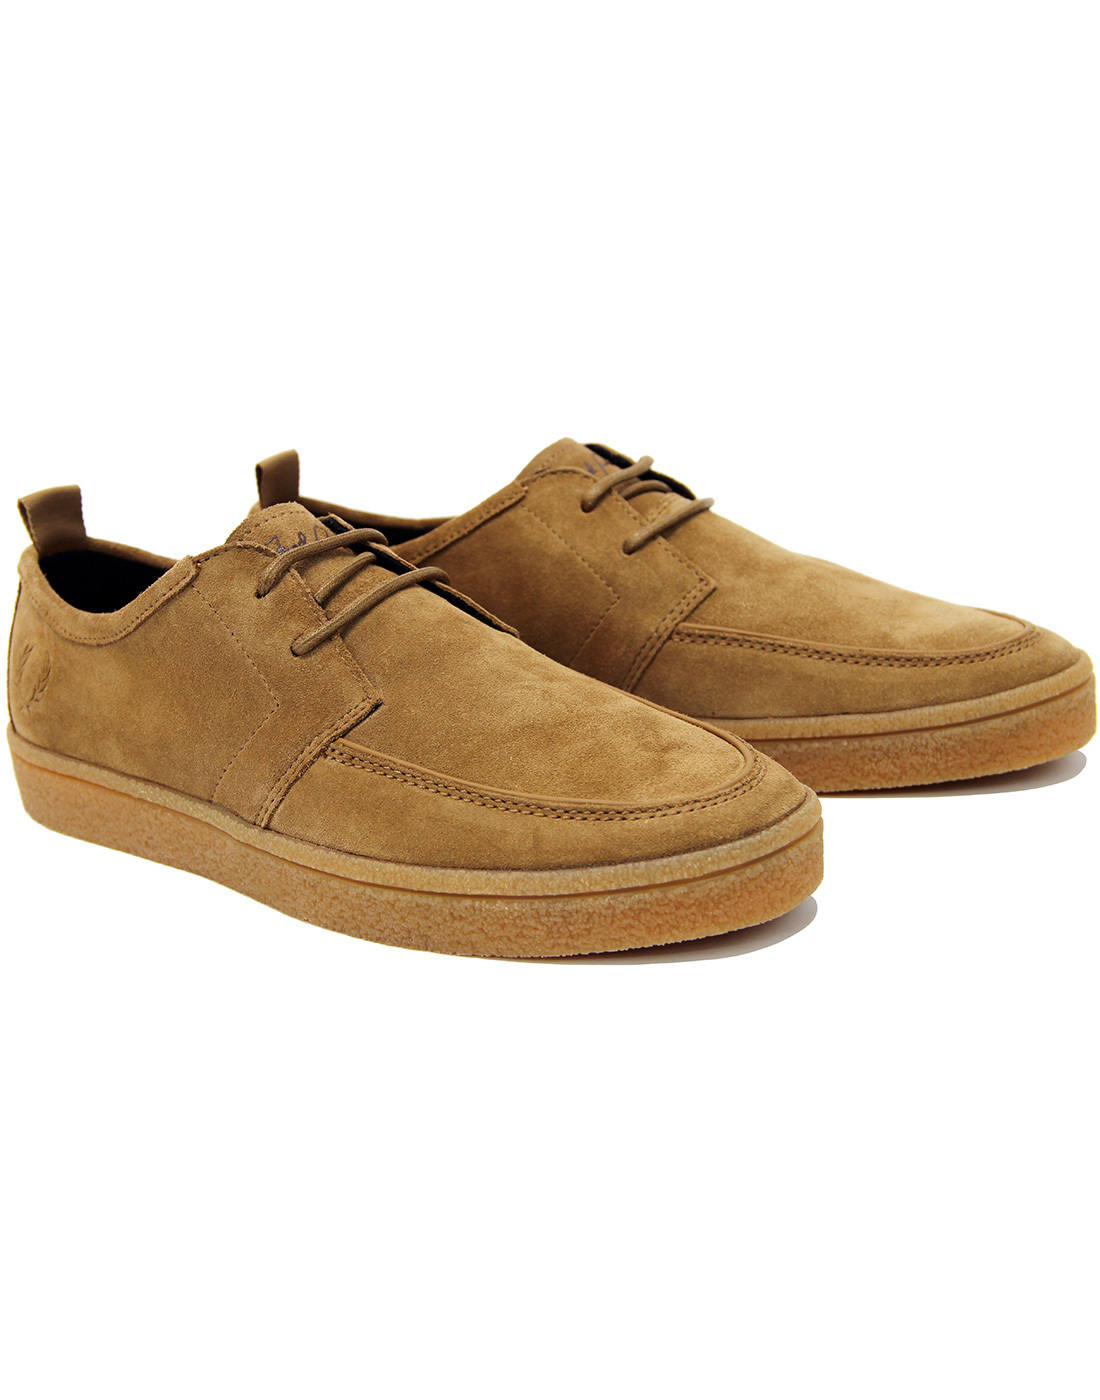 FRED PERRY 'Shield' Suede Crepe Sole